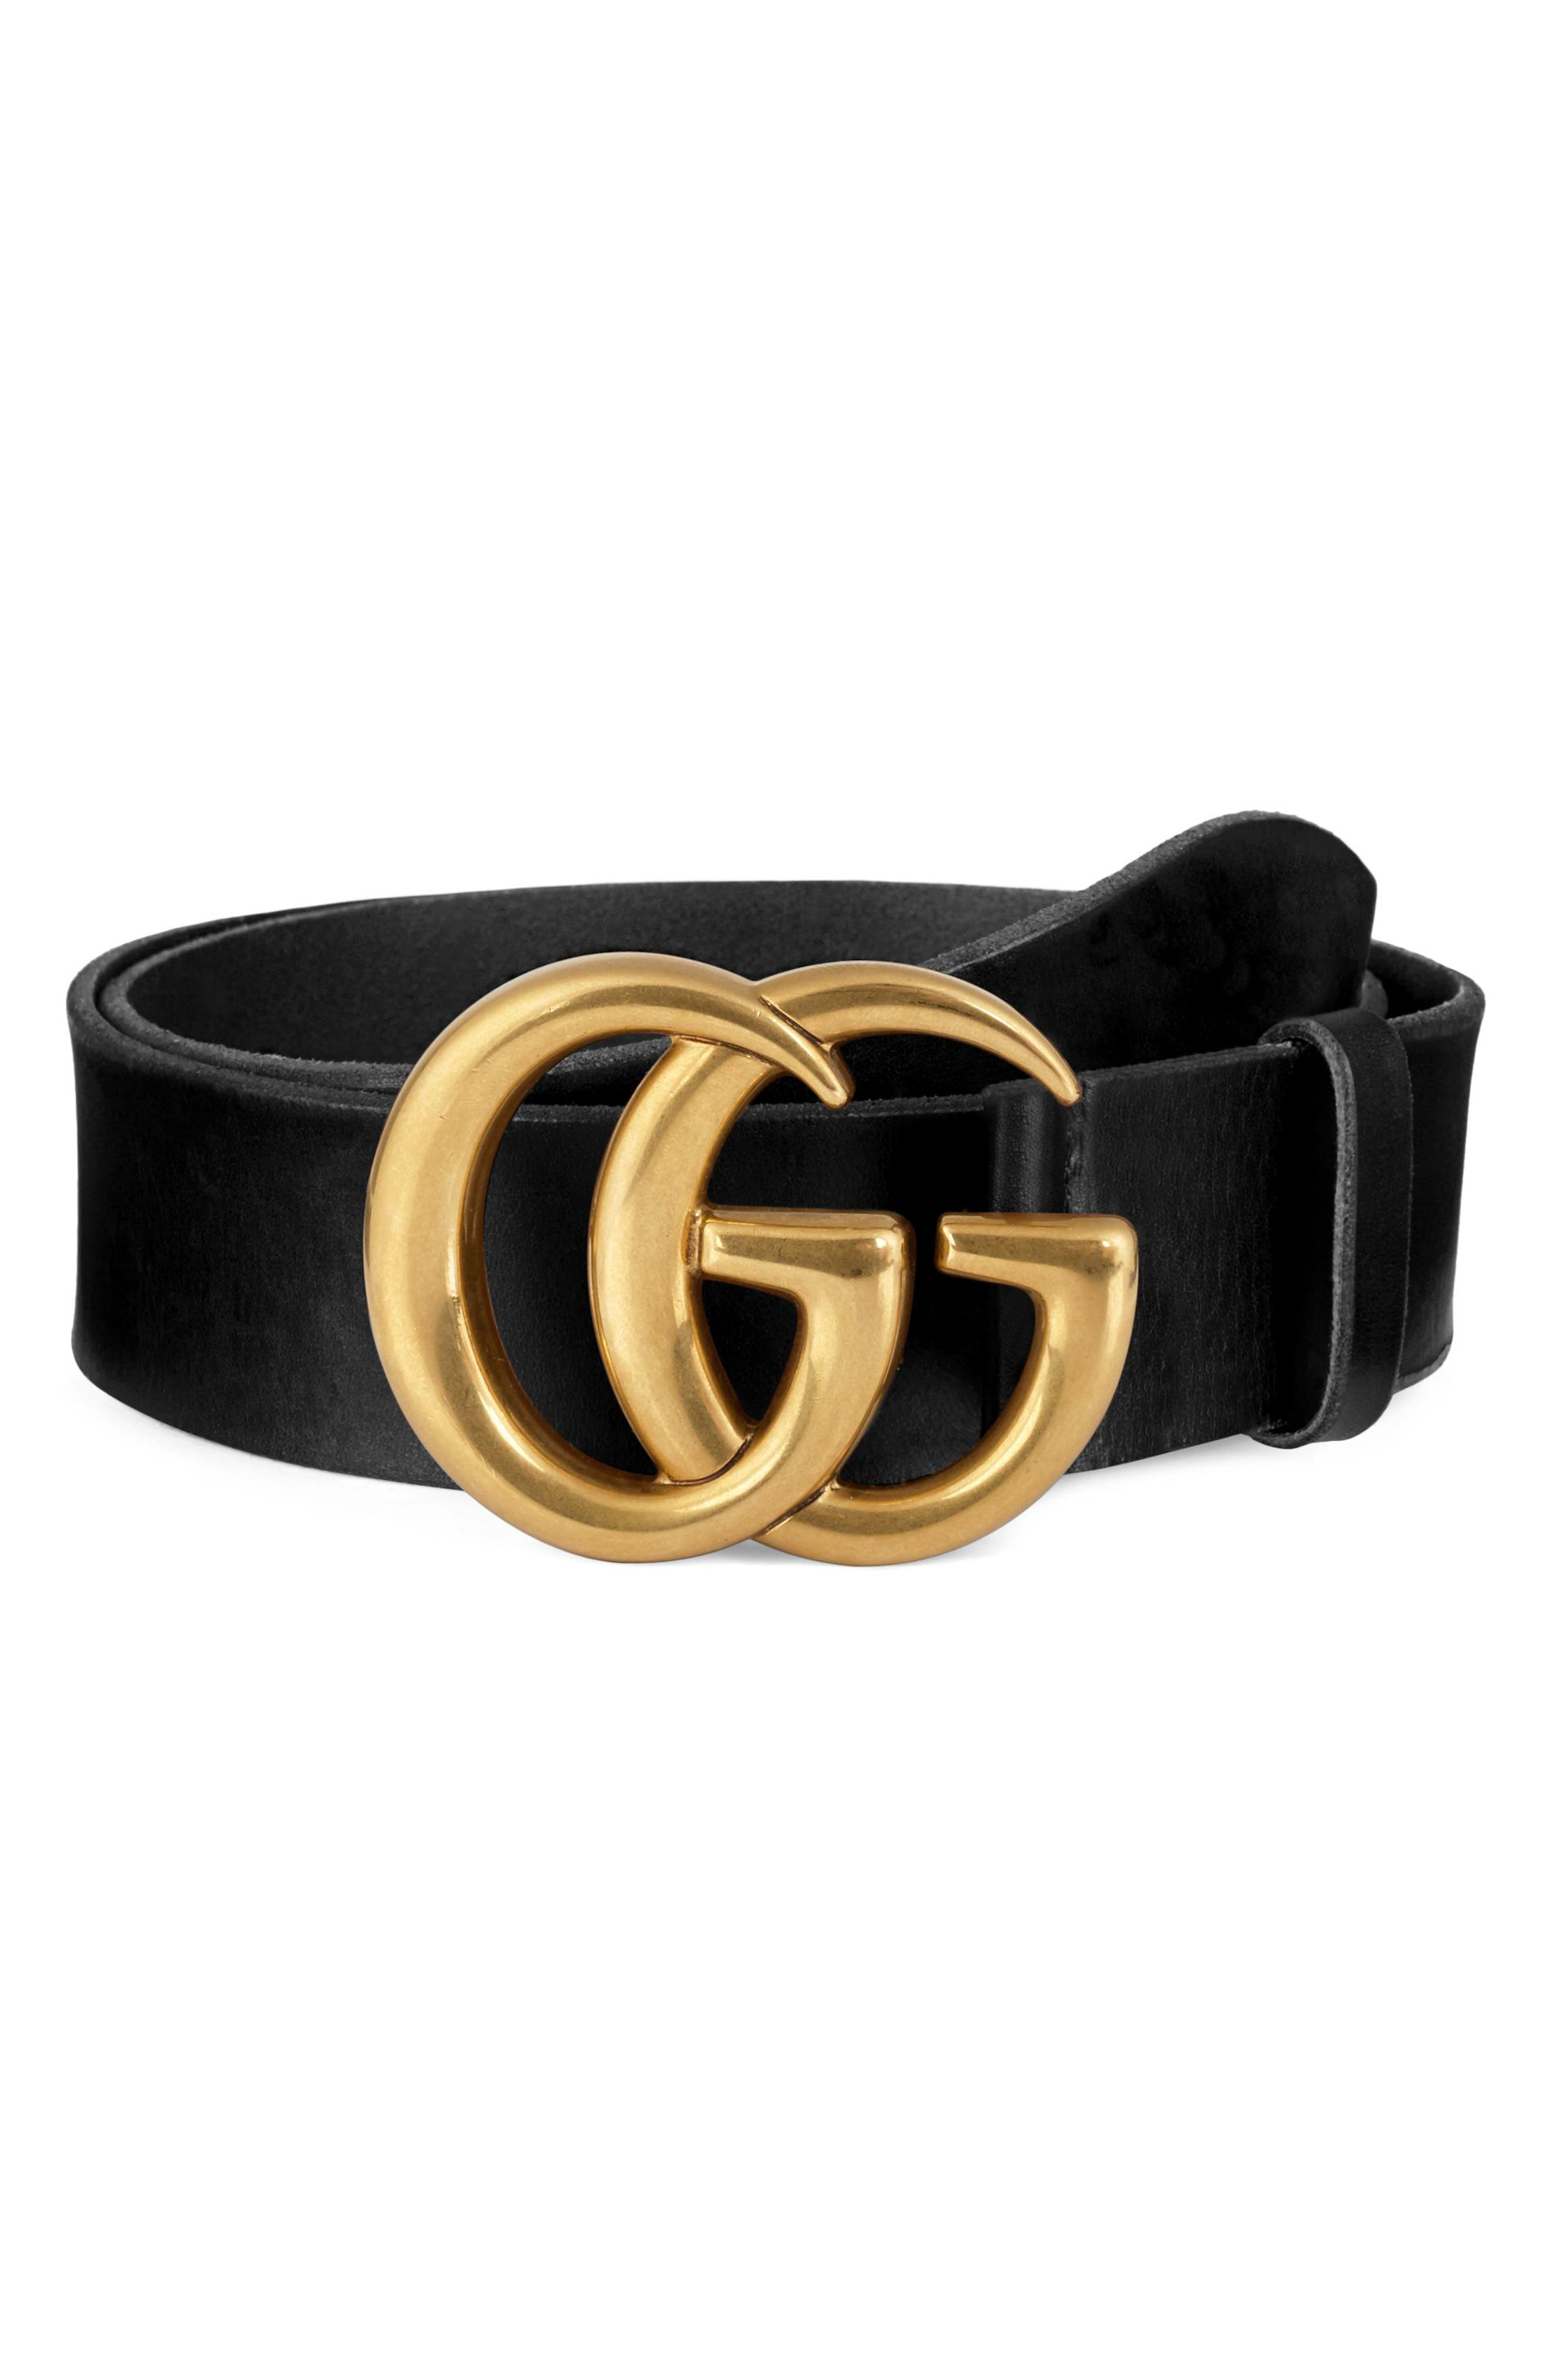 Running Gold Leather Belt,                             Main thumbnail 1, color,                             001